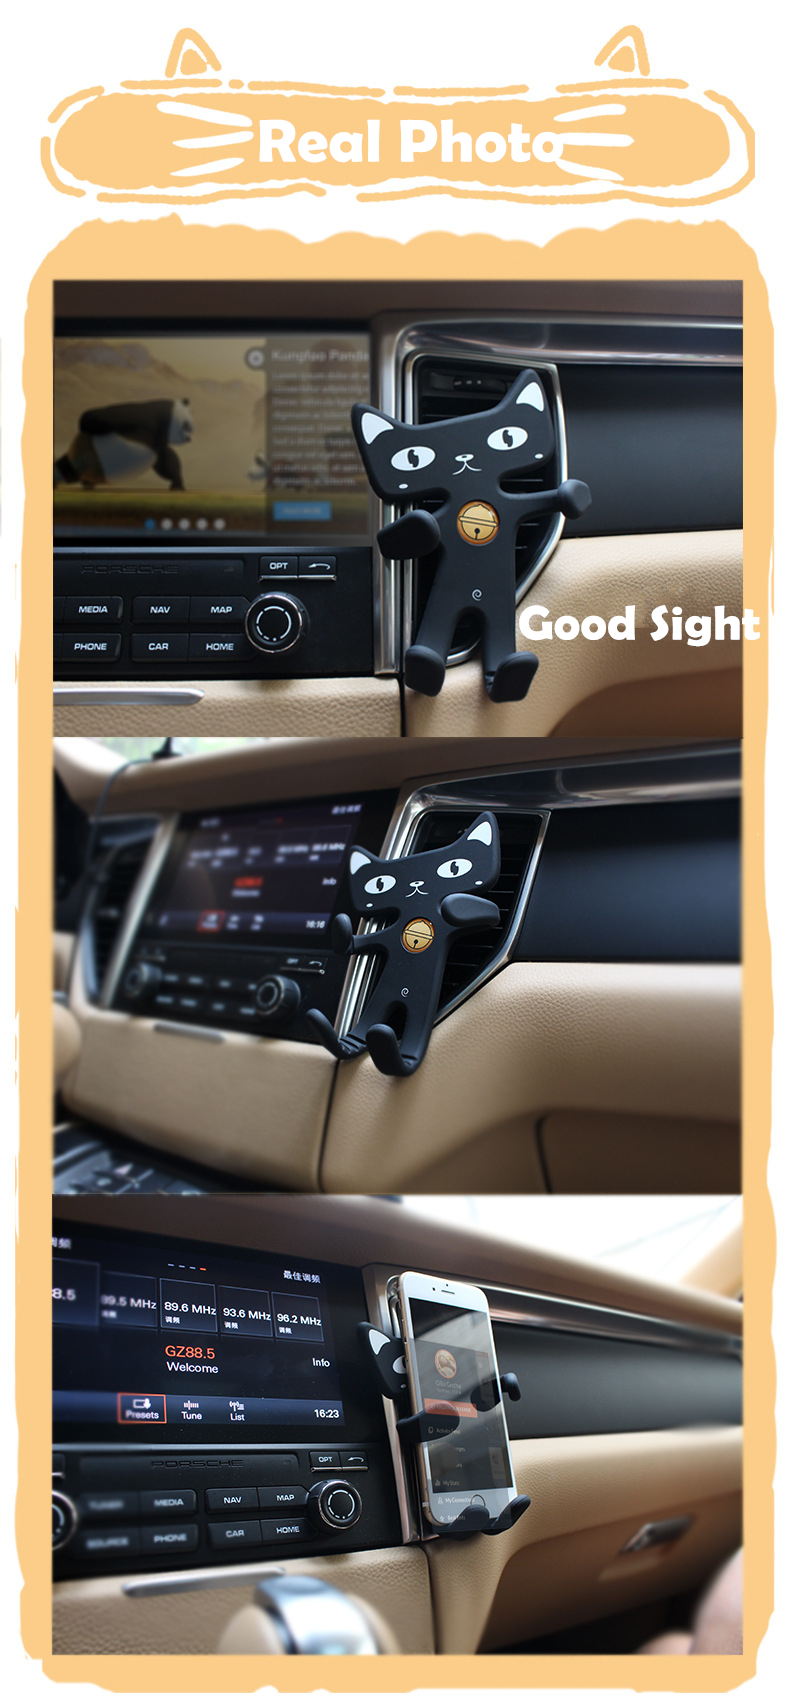 Flexible Soft Rubber Cat Phone Holder for Car and Desk